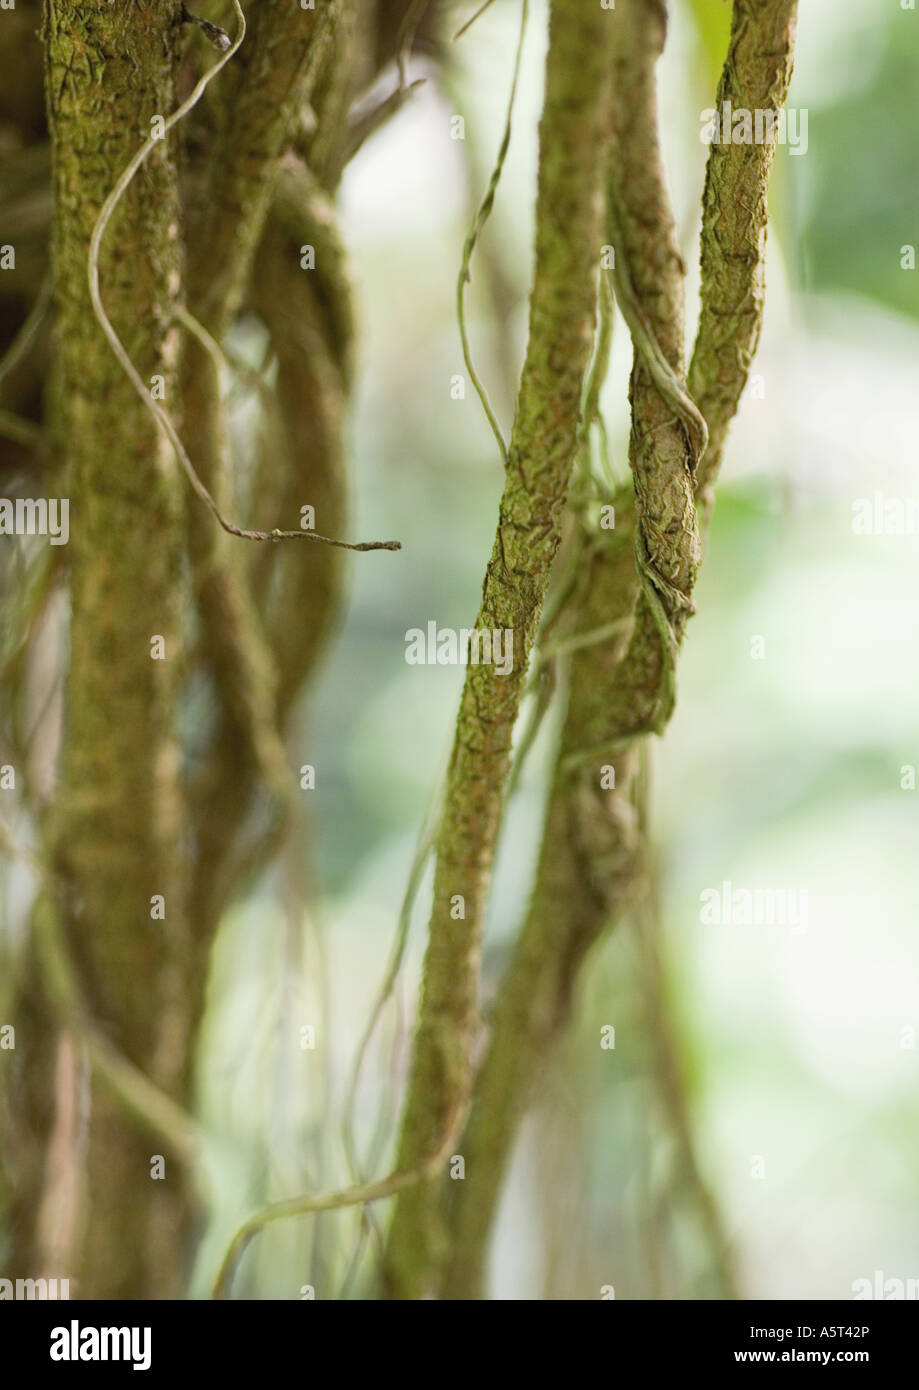 Vines - Stock Image